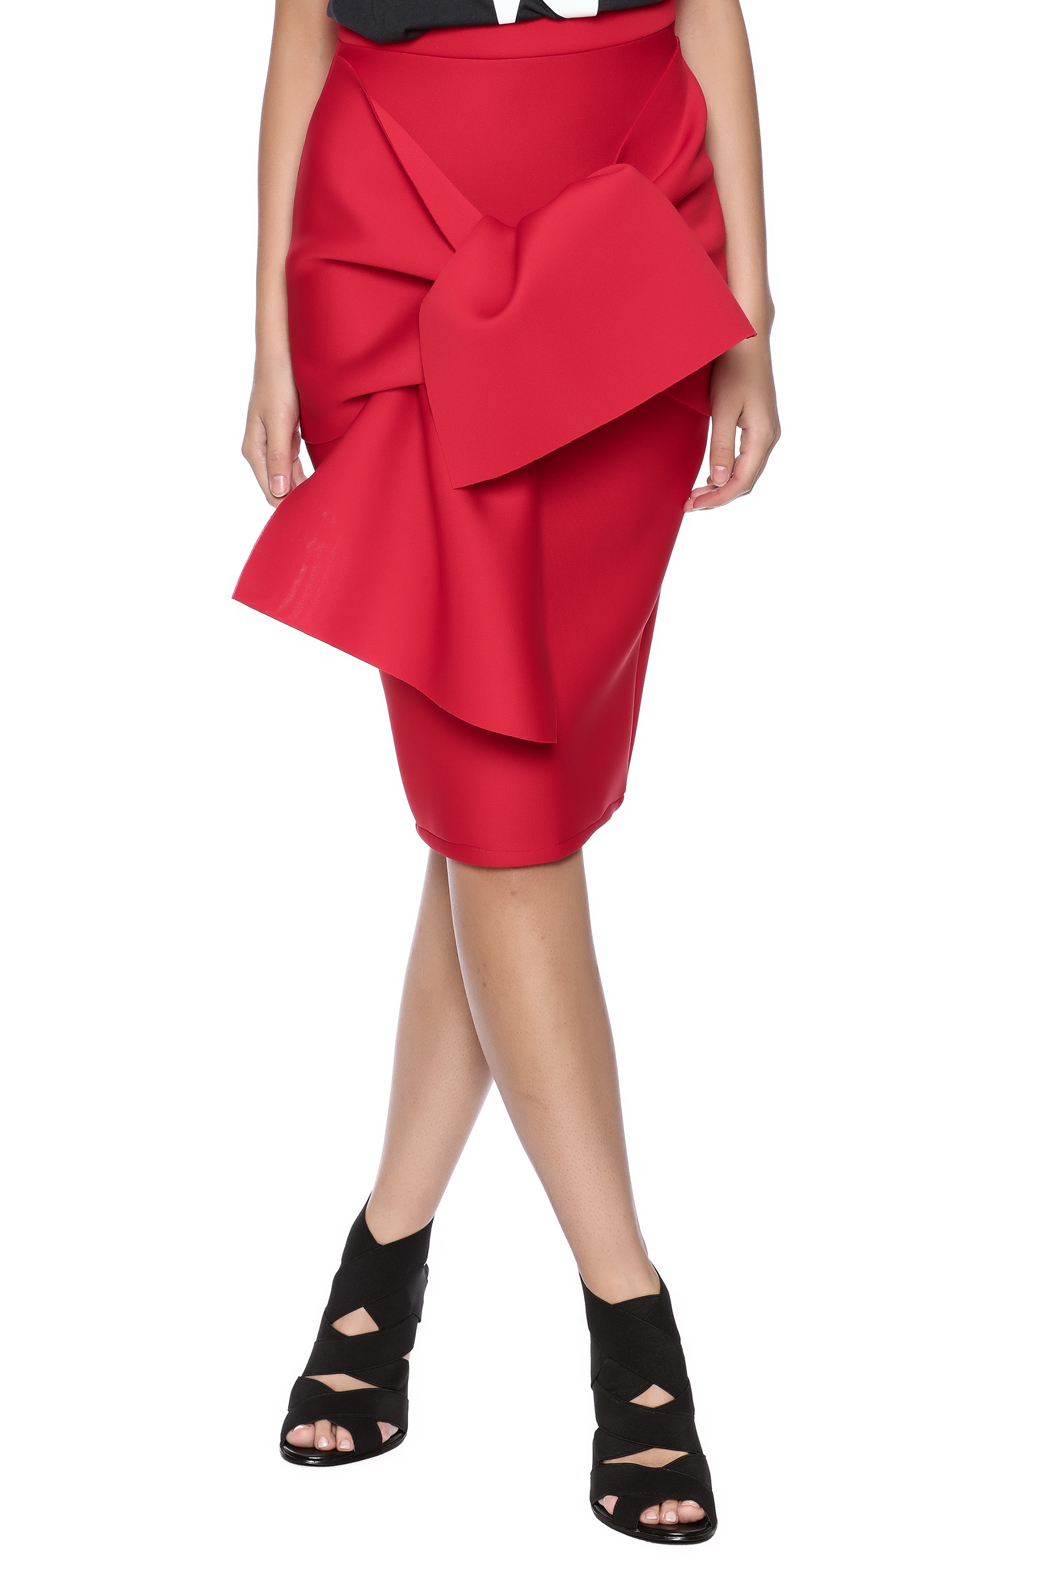 Layanna Aguilar Origami Skirt From Manhattan By 3ny Shoptiques